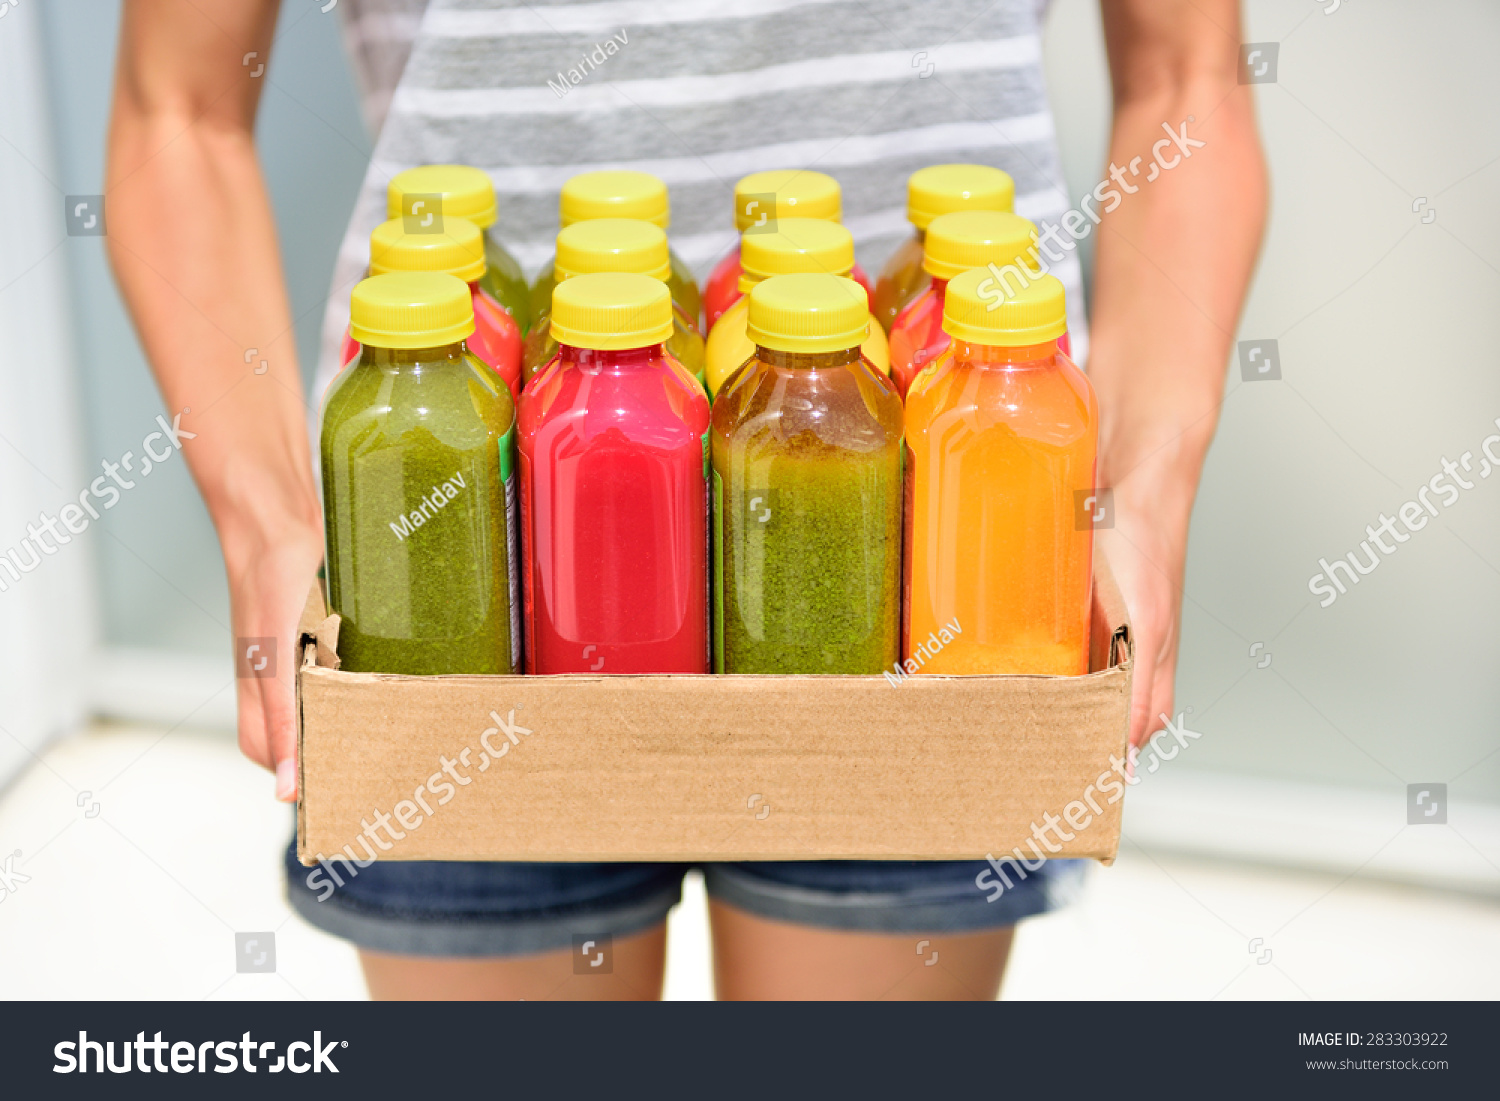 Juicing Cold Pressed Vegetable Juices Detox Stock Photo 283303922 - Shutterstock